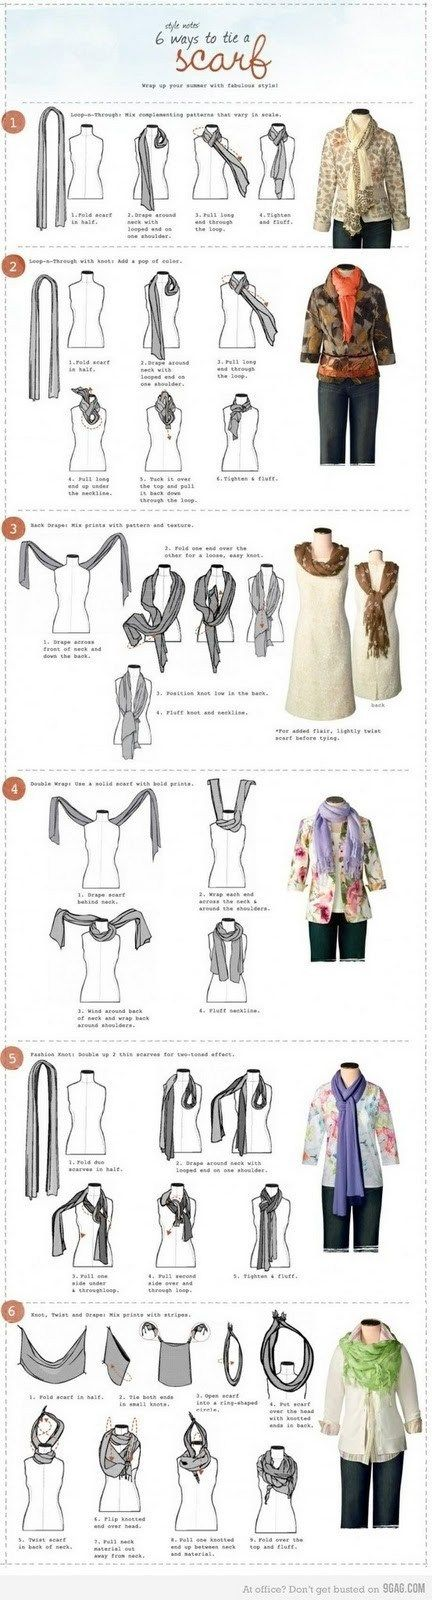 More great ways to wear your #scarf.